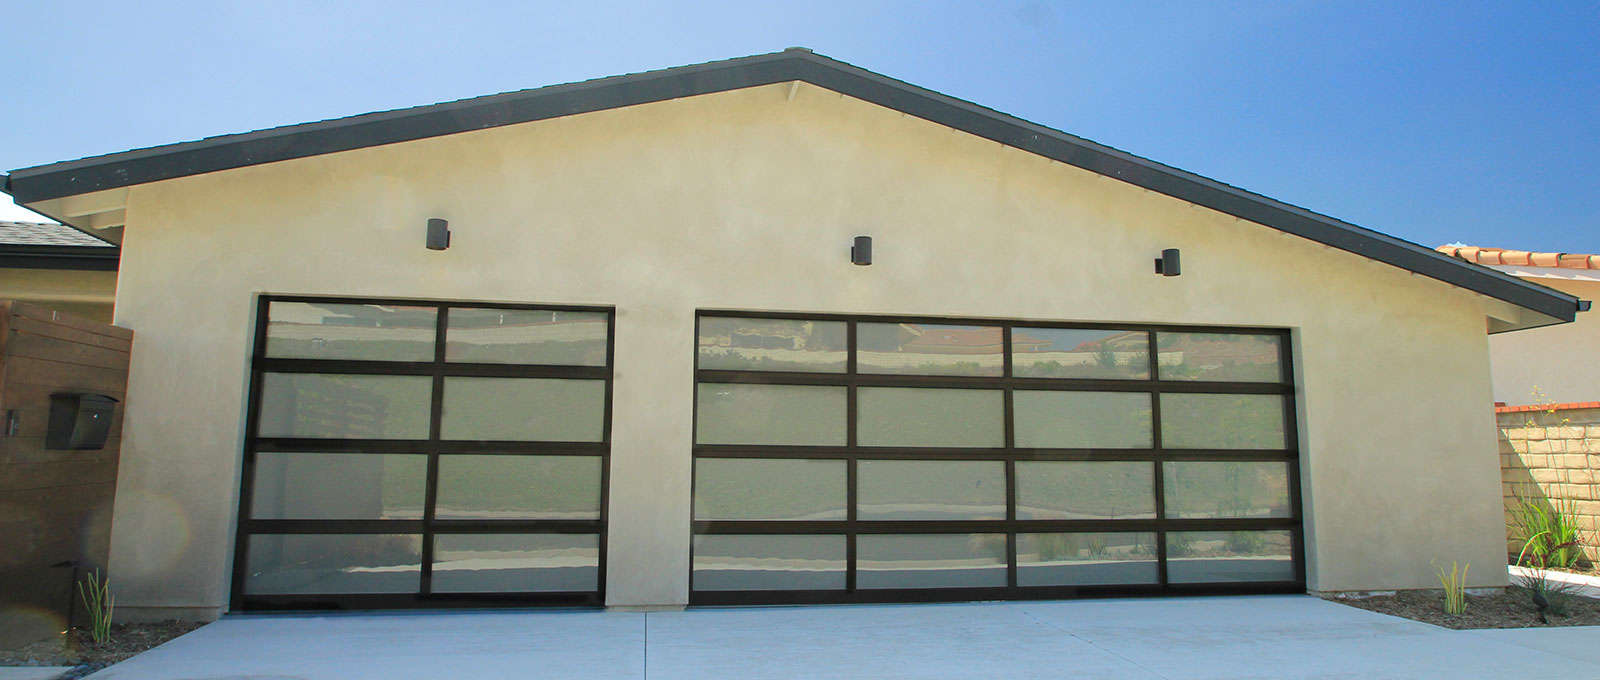 Glass Garage Doors Garage Doors Unlimited Gdu Garage Doors